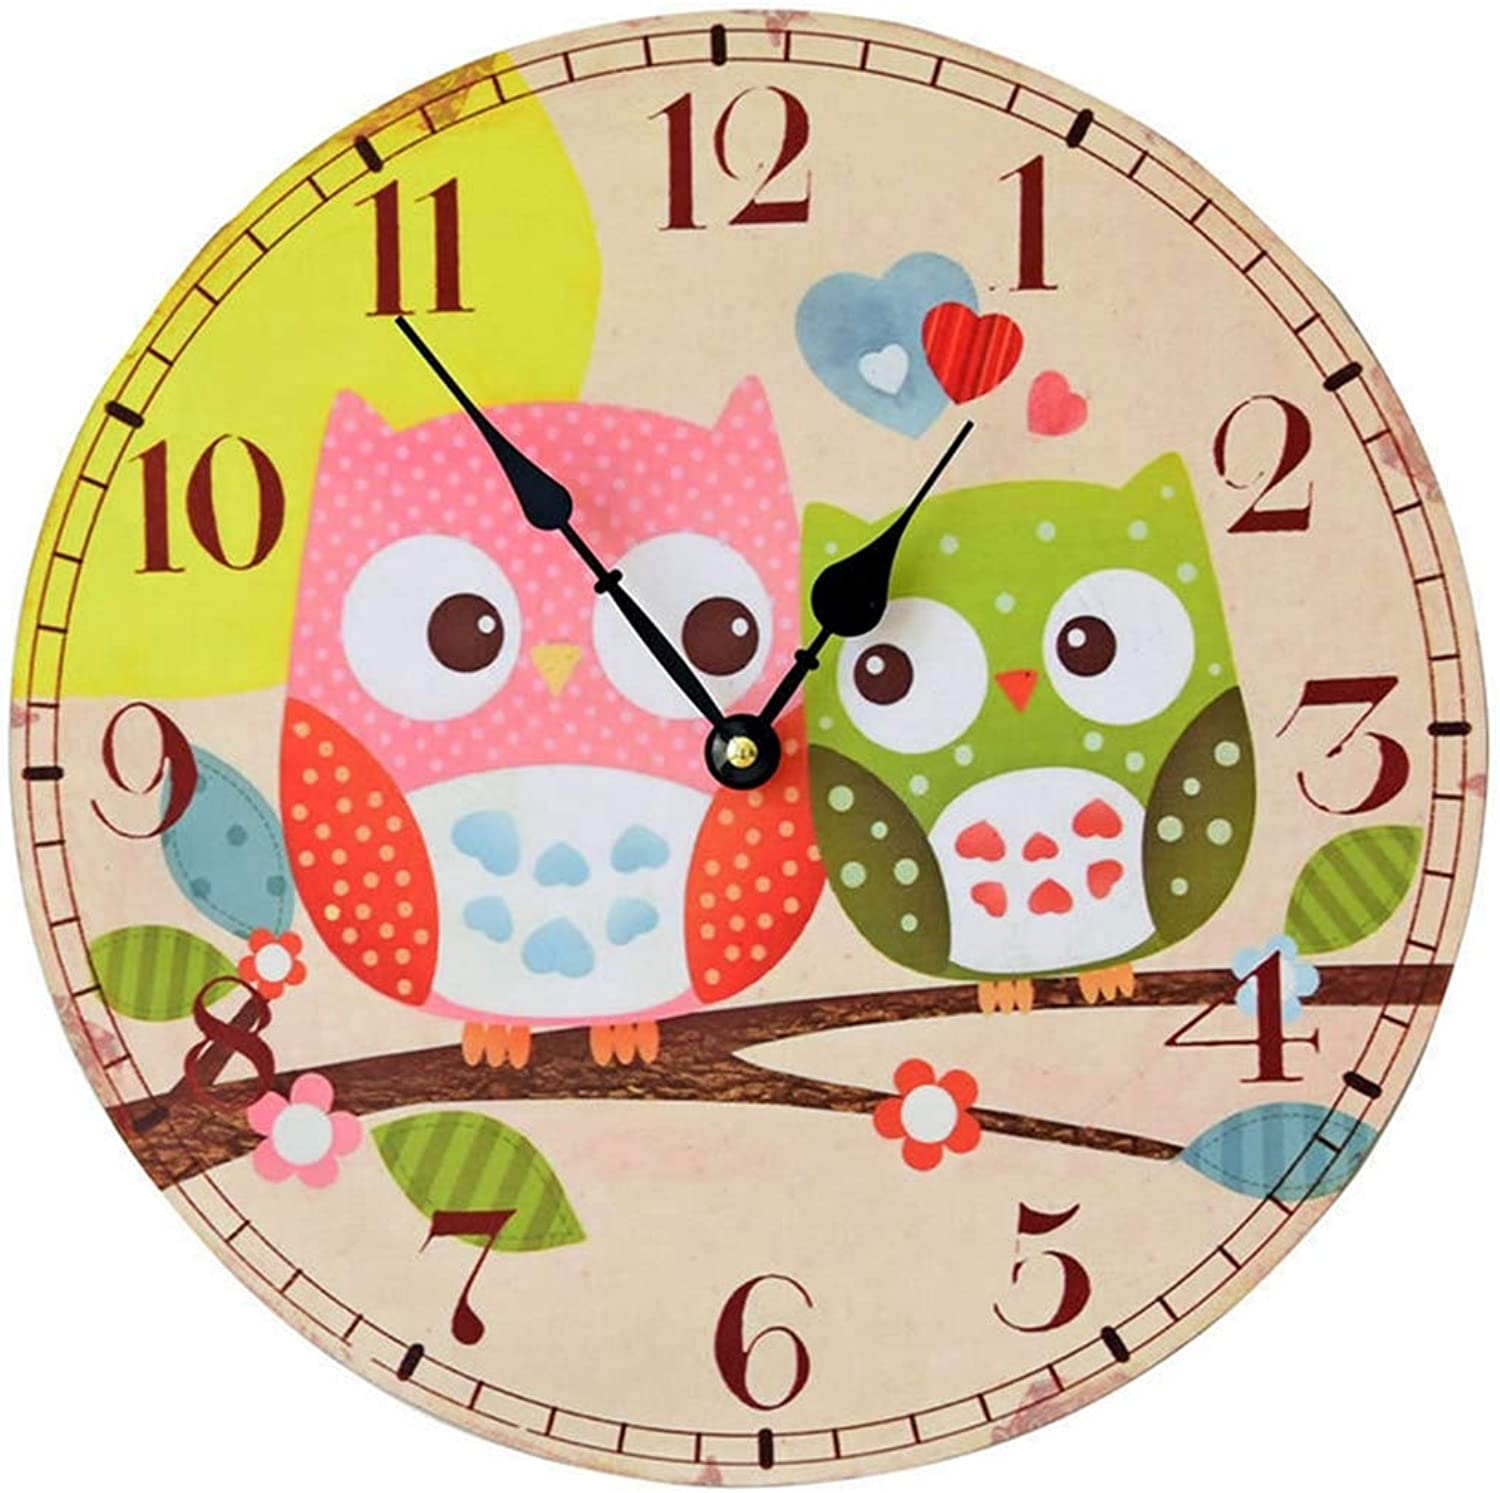 Simple Rustic Style Wall Clock,Retro color Printing Wooden owl Pattern Wall Clock Living roon Wall Bedroom Mute Wall Clock,35  35cm